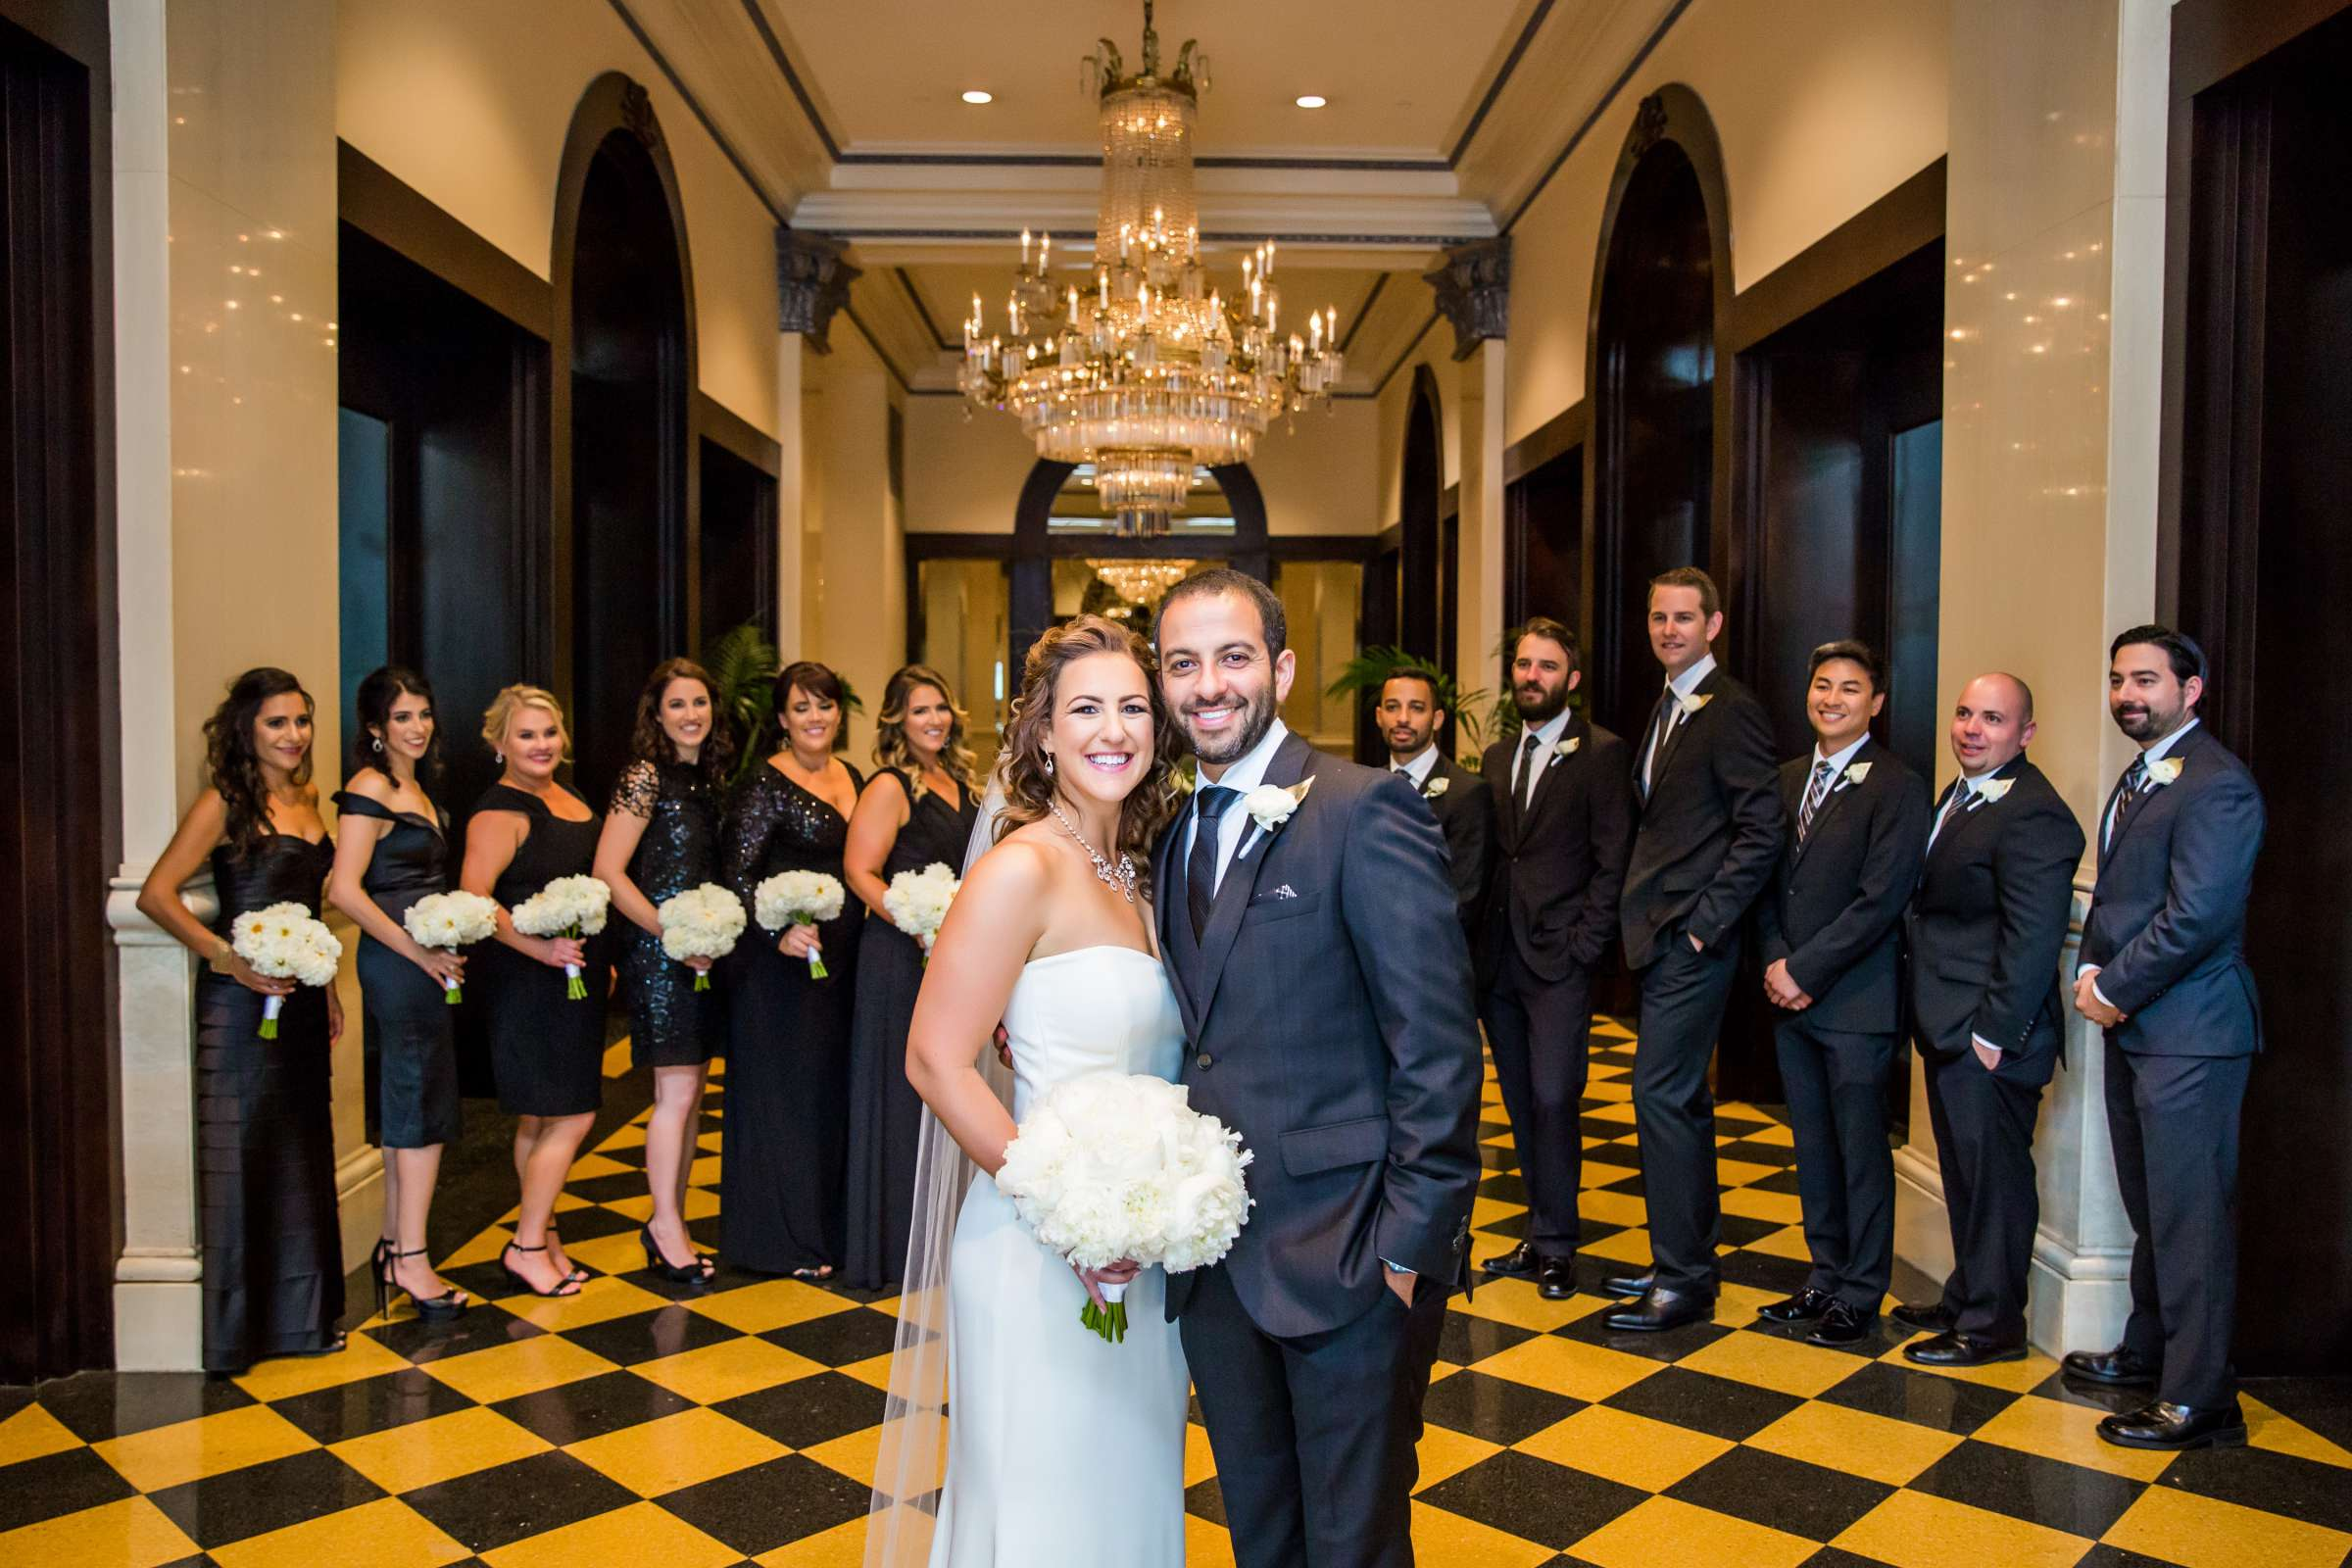 San Diego Museum of Art Wedding coordinated by First Comes Love Weddings & Events, Ruthie and Larry Wedding Photo #236794 by True Photography